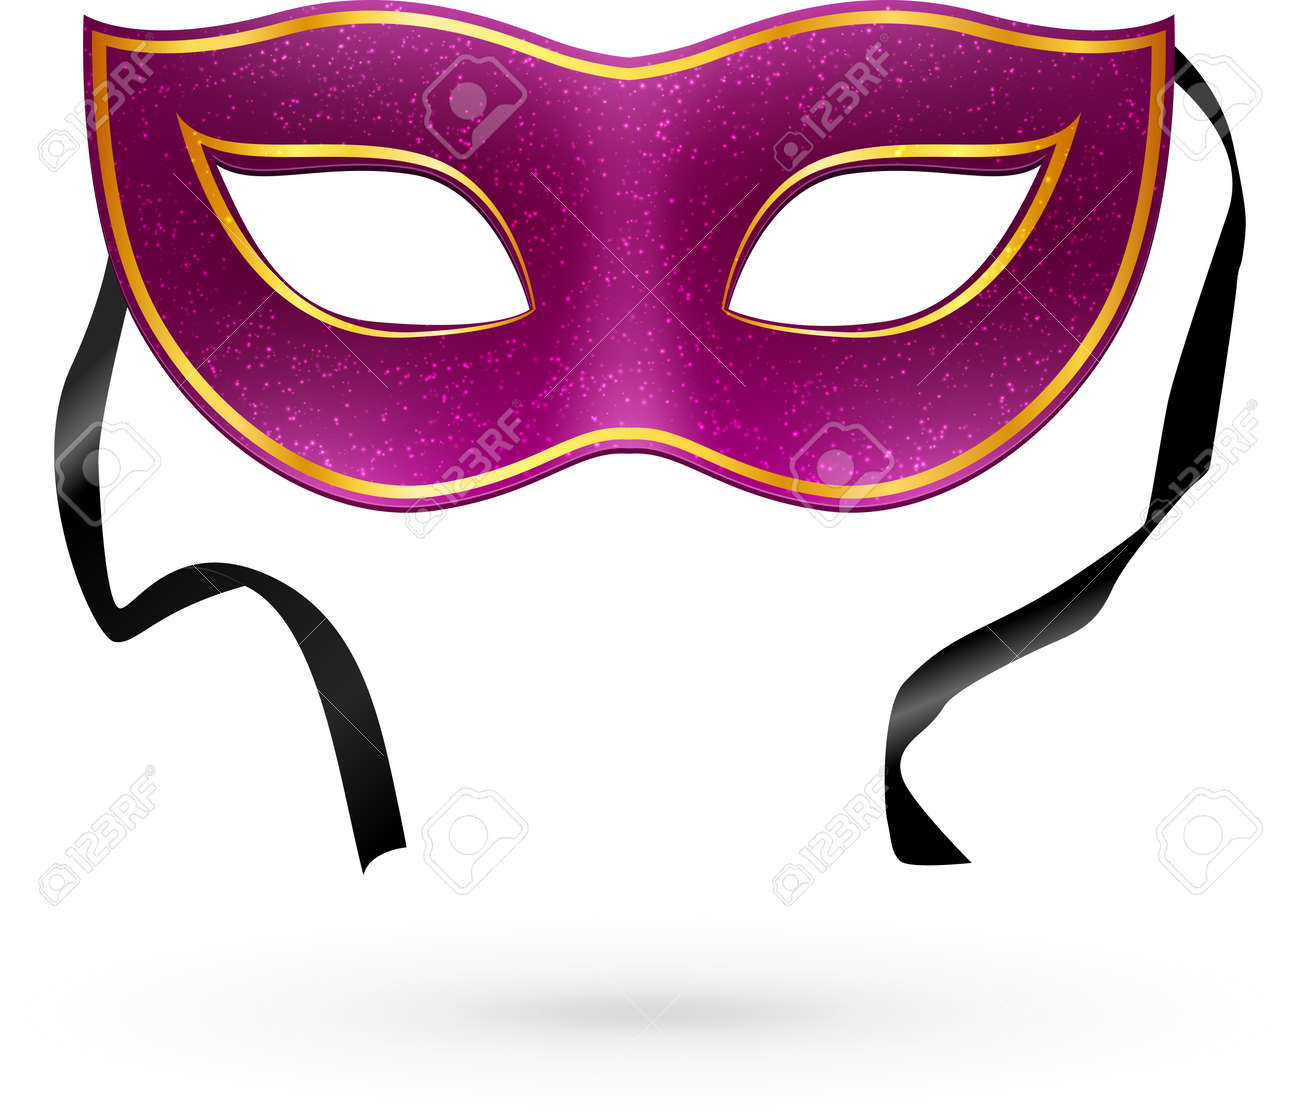 3 771 mardi gras mask cliparts stock vector and royalty free